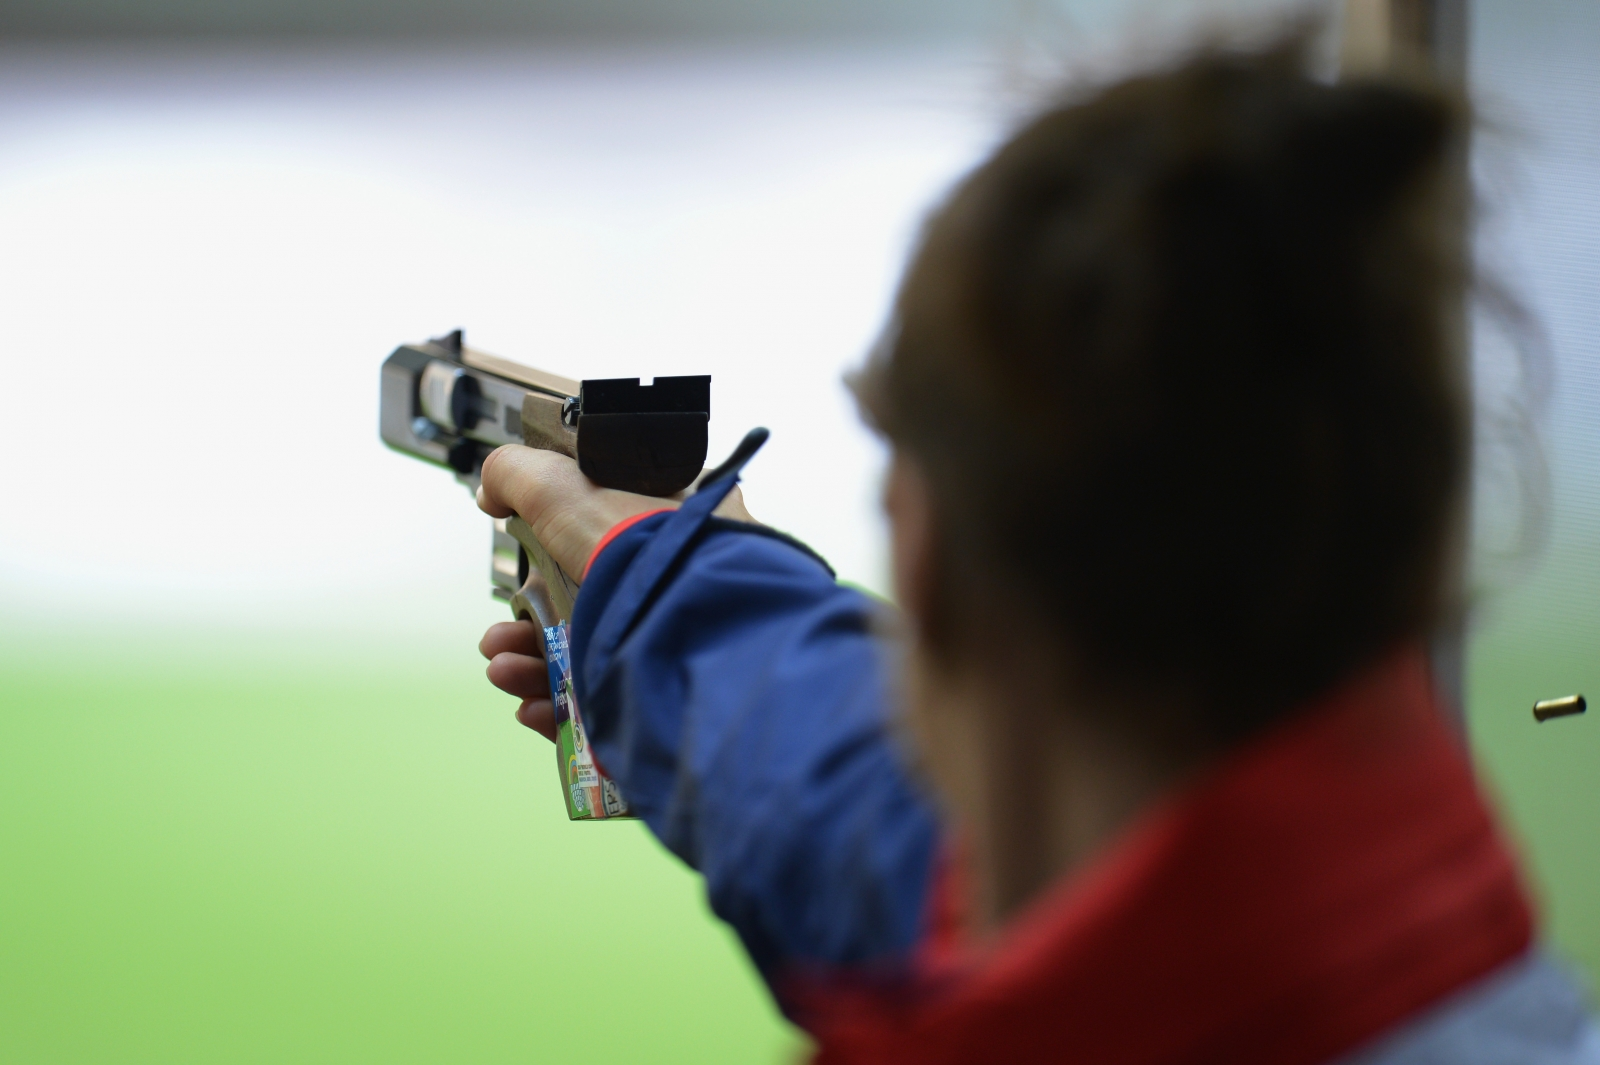 Rio 2016 Olympic shooting